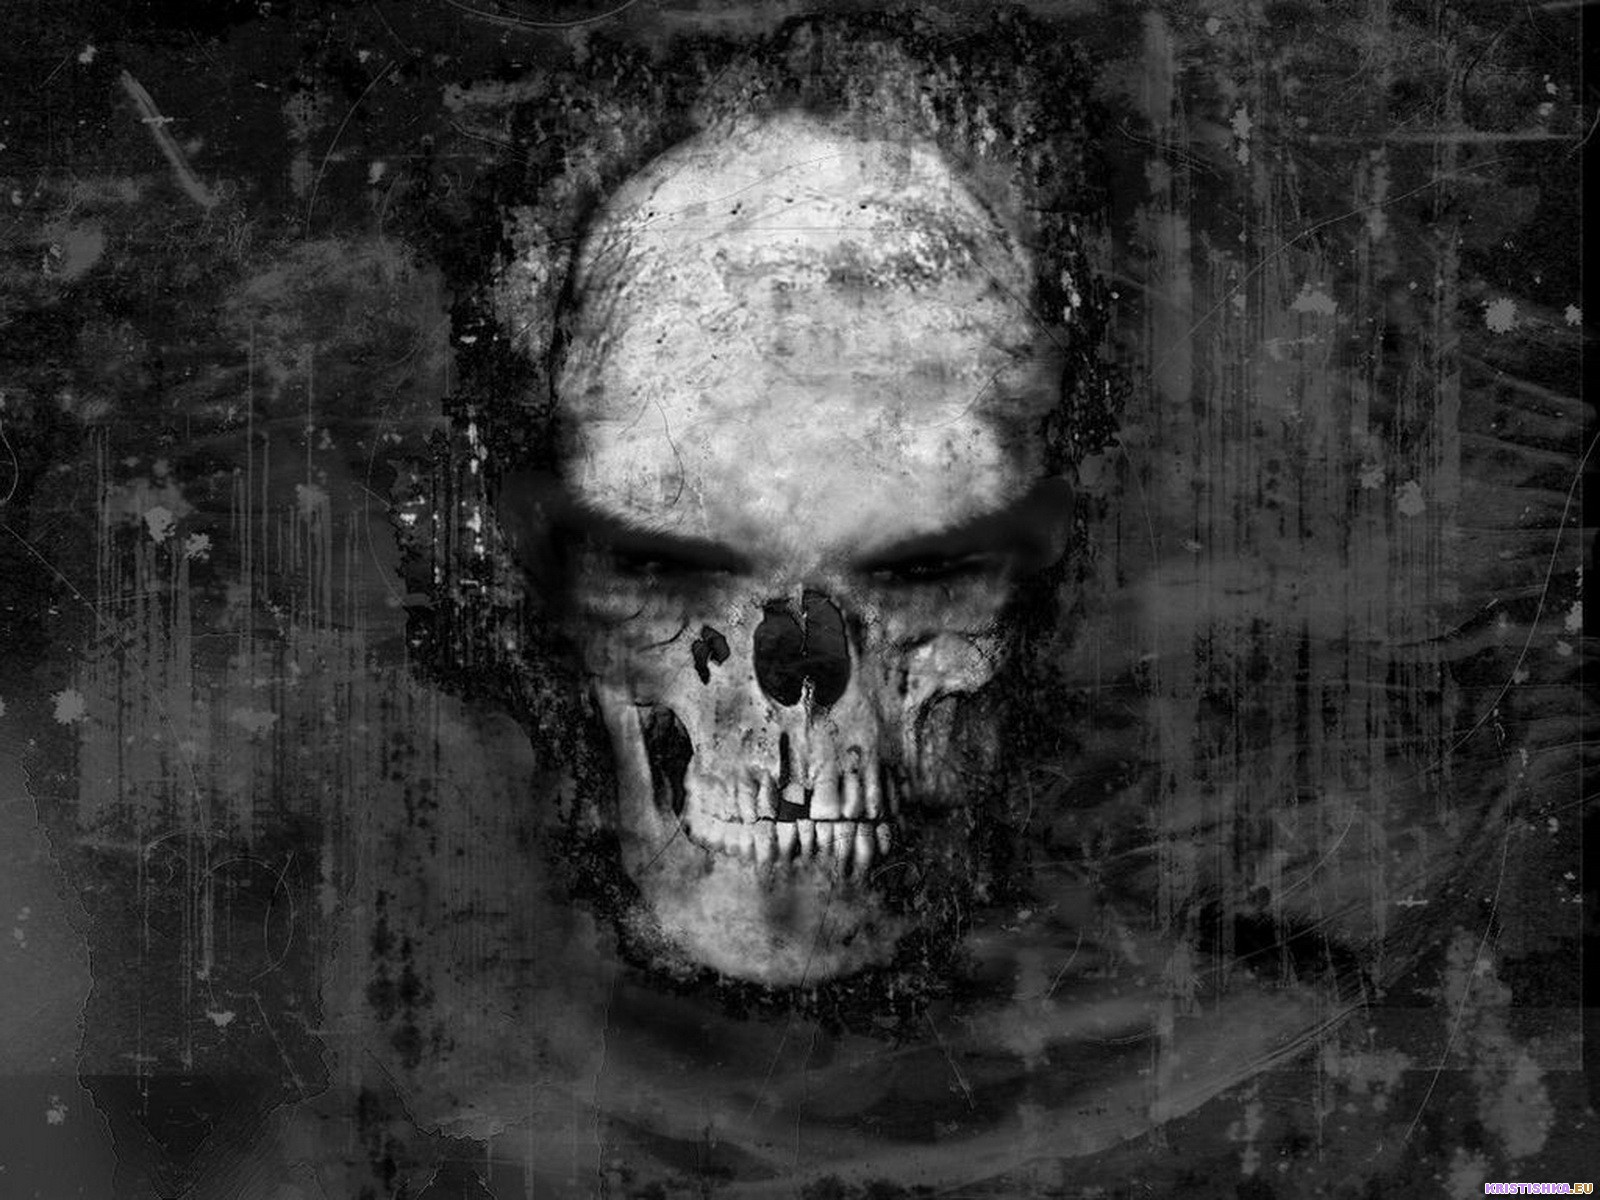 evil skull wallpapers screensaver - photo #25